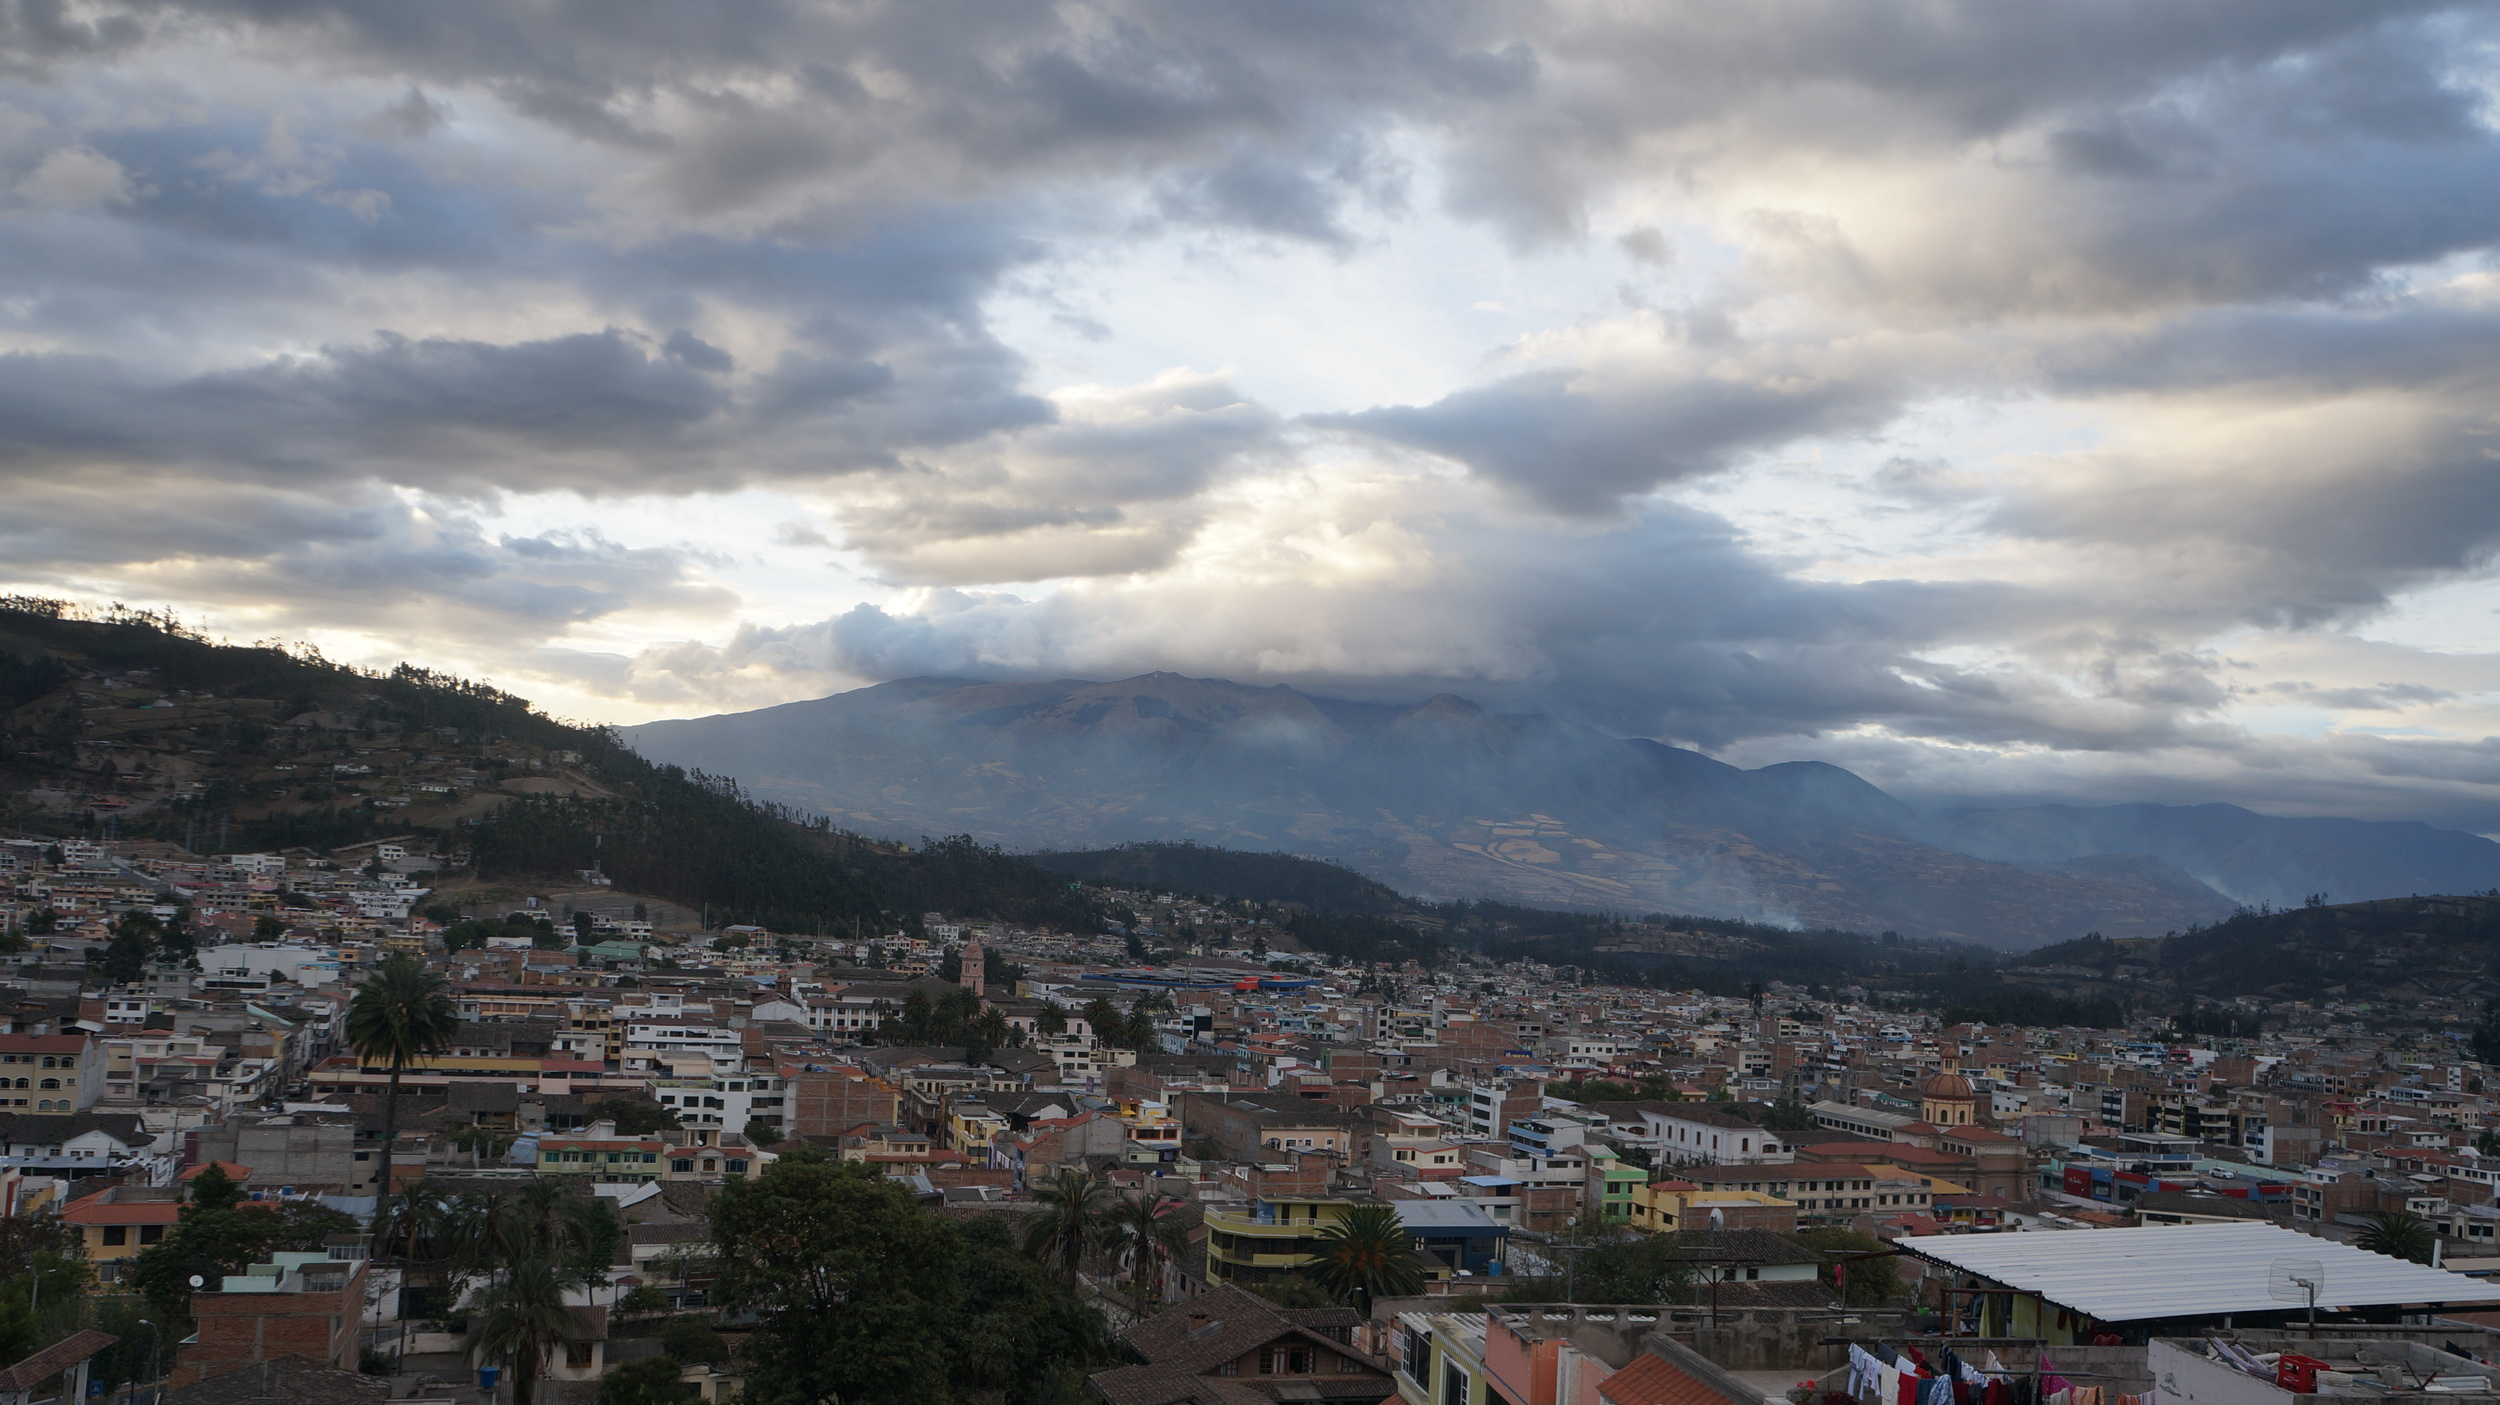 The views of this Volcano in Otavalo never get old. It stands over this village like a patriarchal protector.